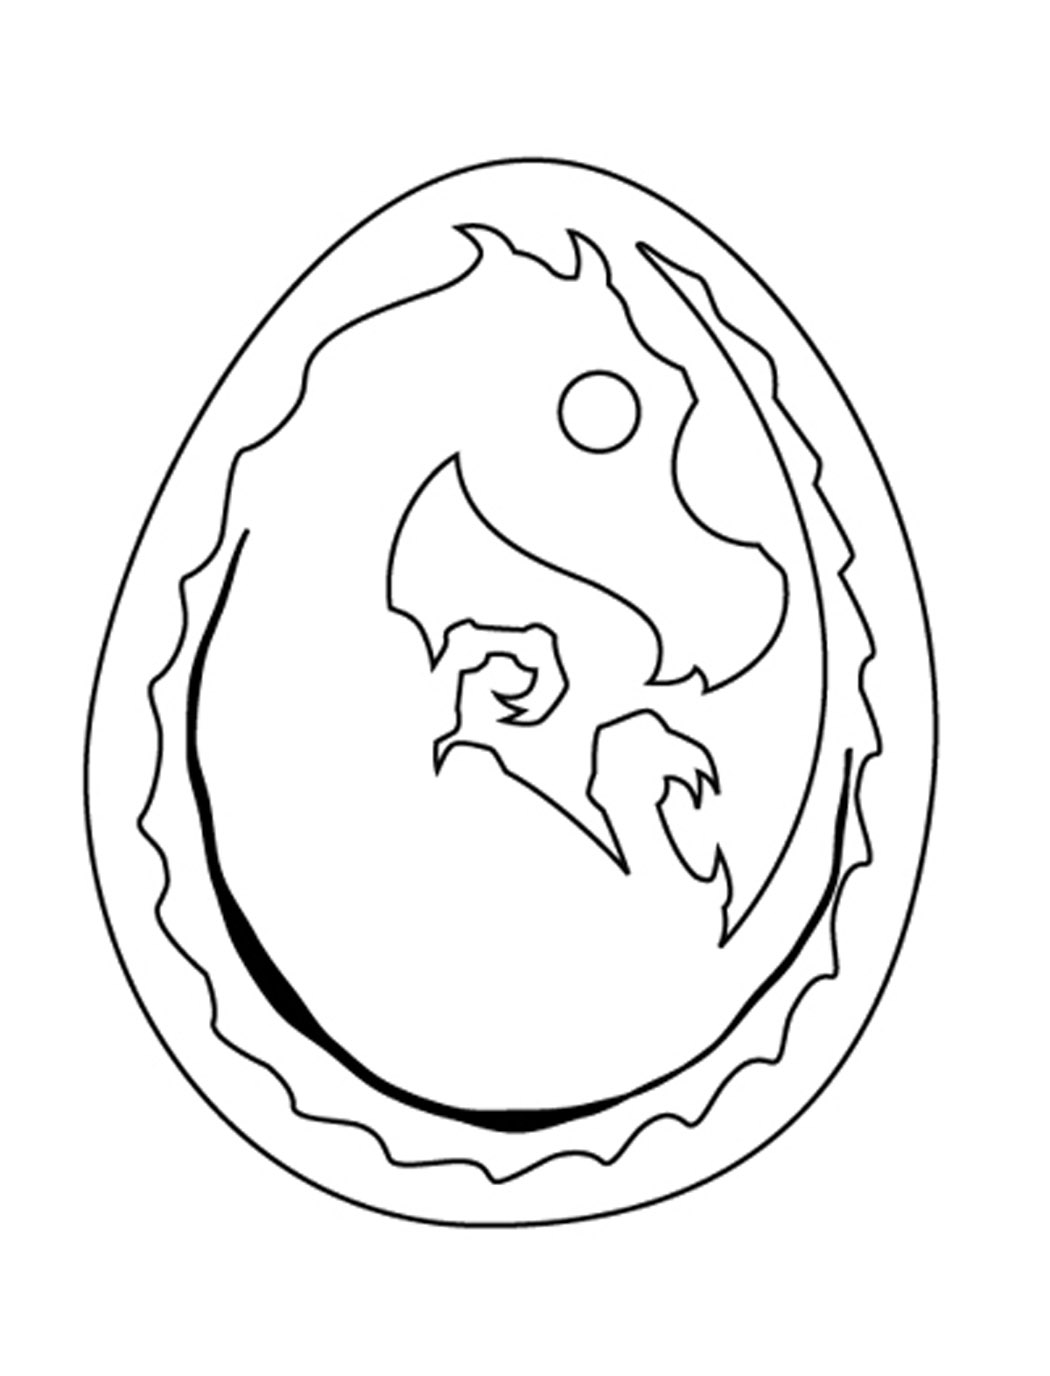 1050x1376 Famous Dragon Egg Coloring Pages Festooning